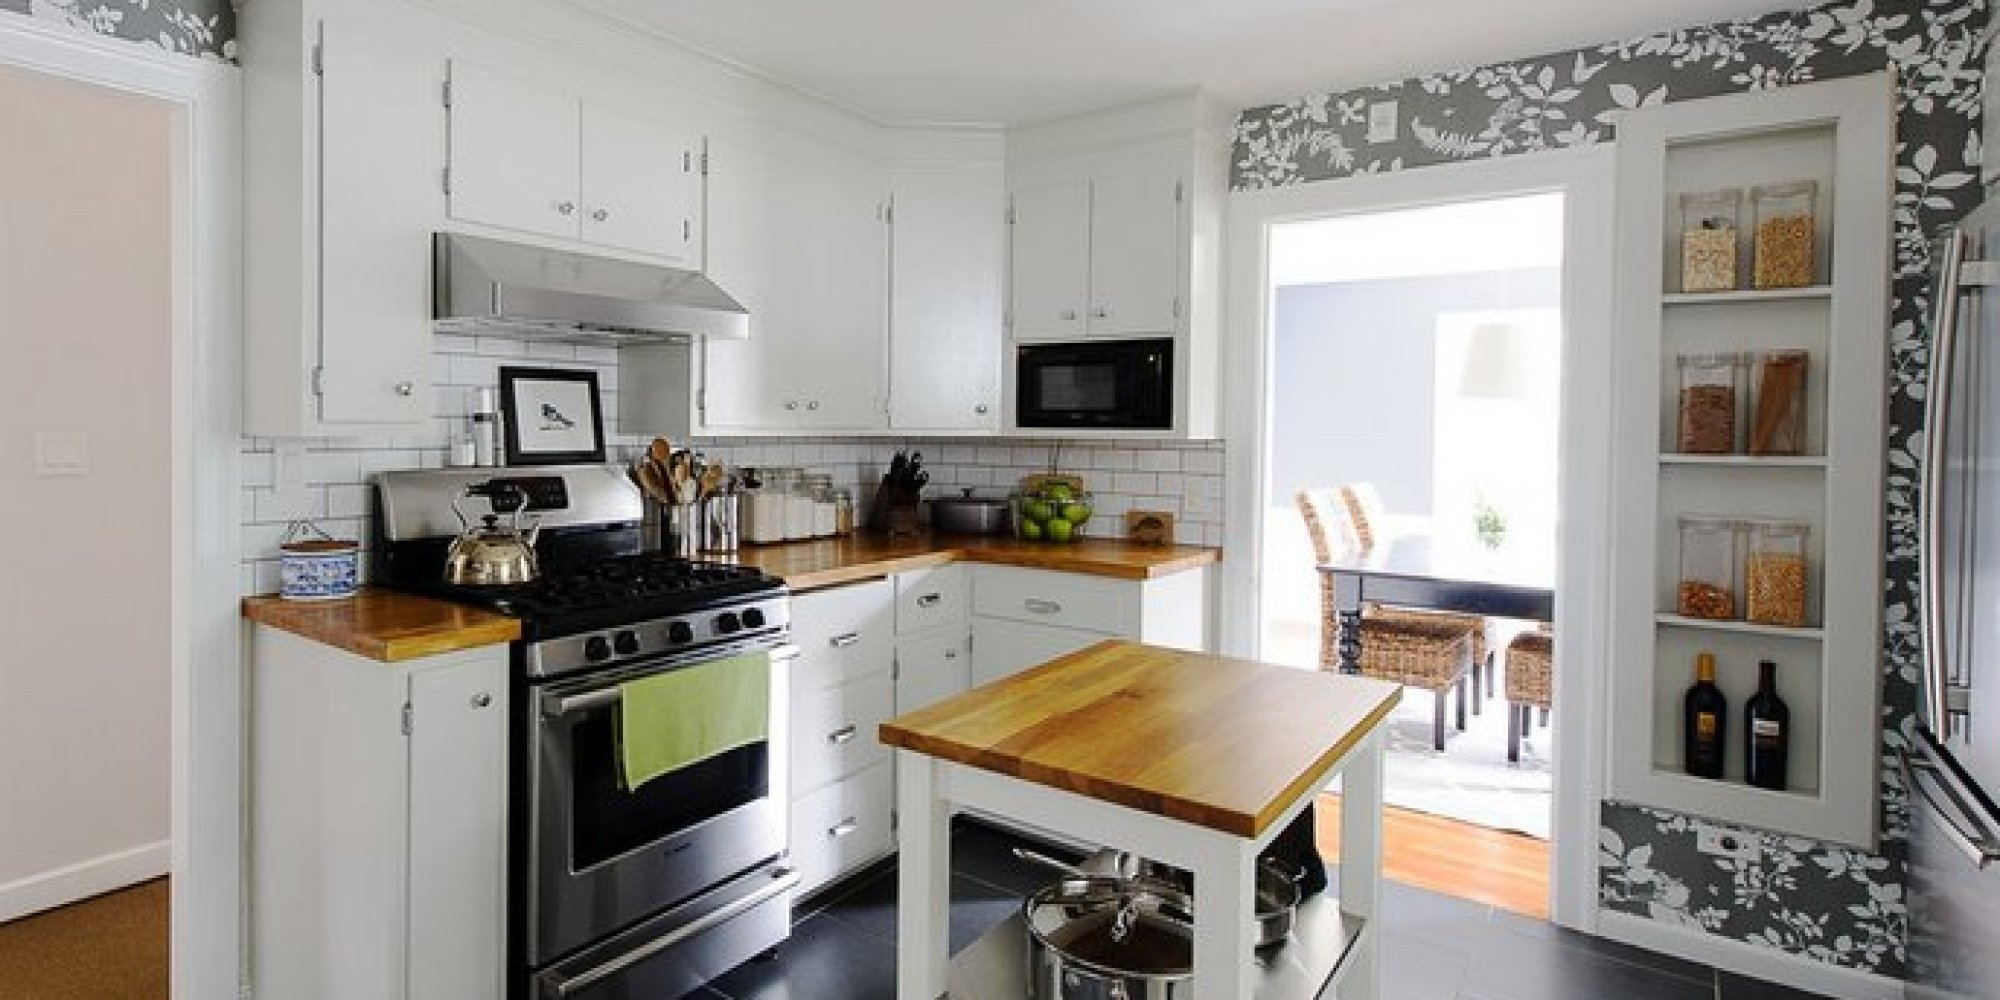 10 Perfect Small Kitchen Decorating Ideas On A Budget 2021